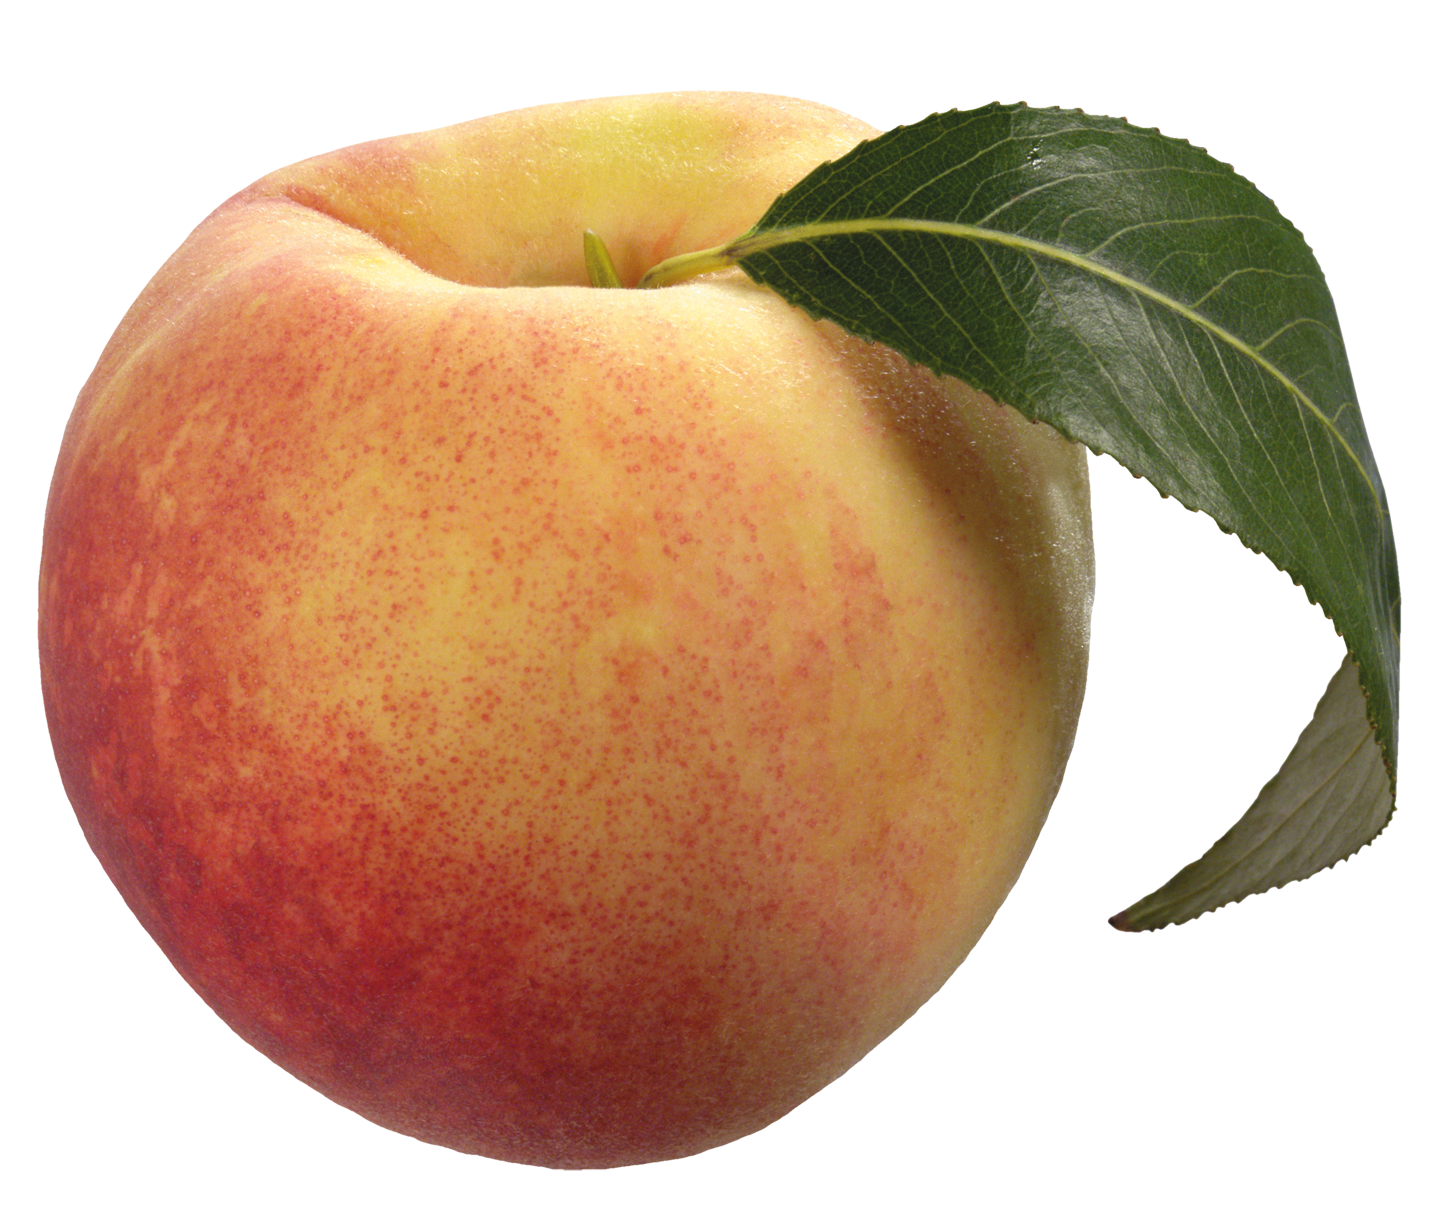 Peach clipart png. With green leaf best